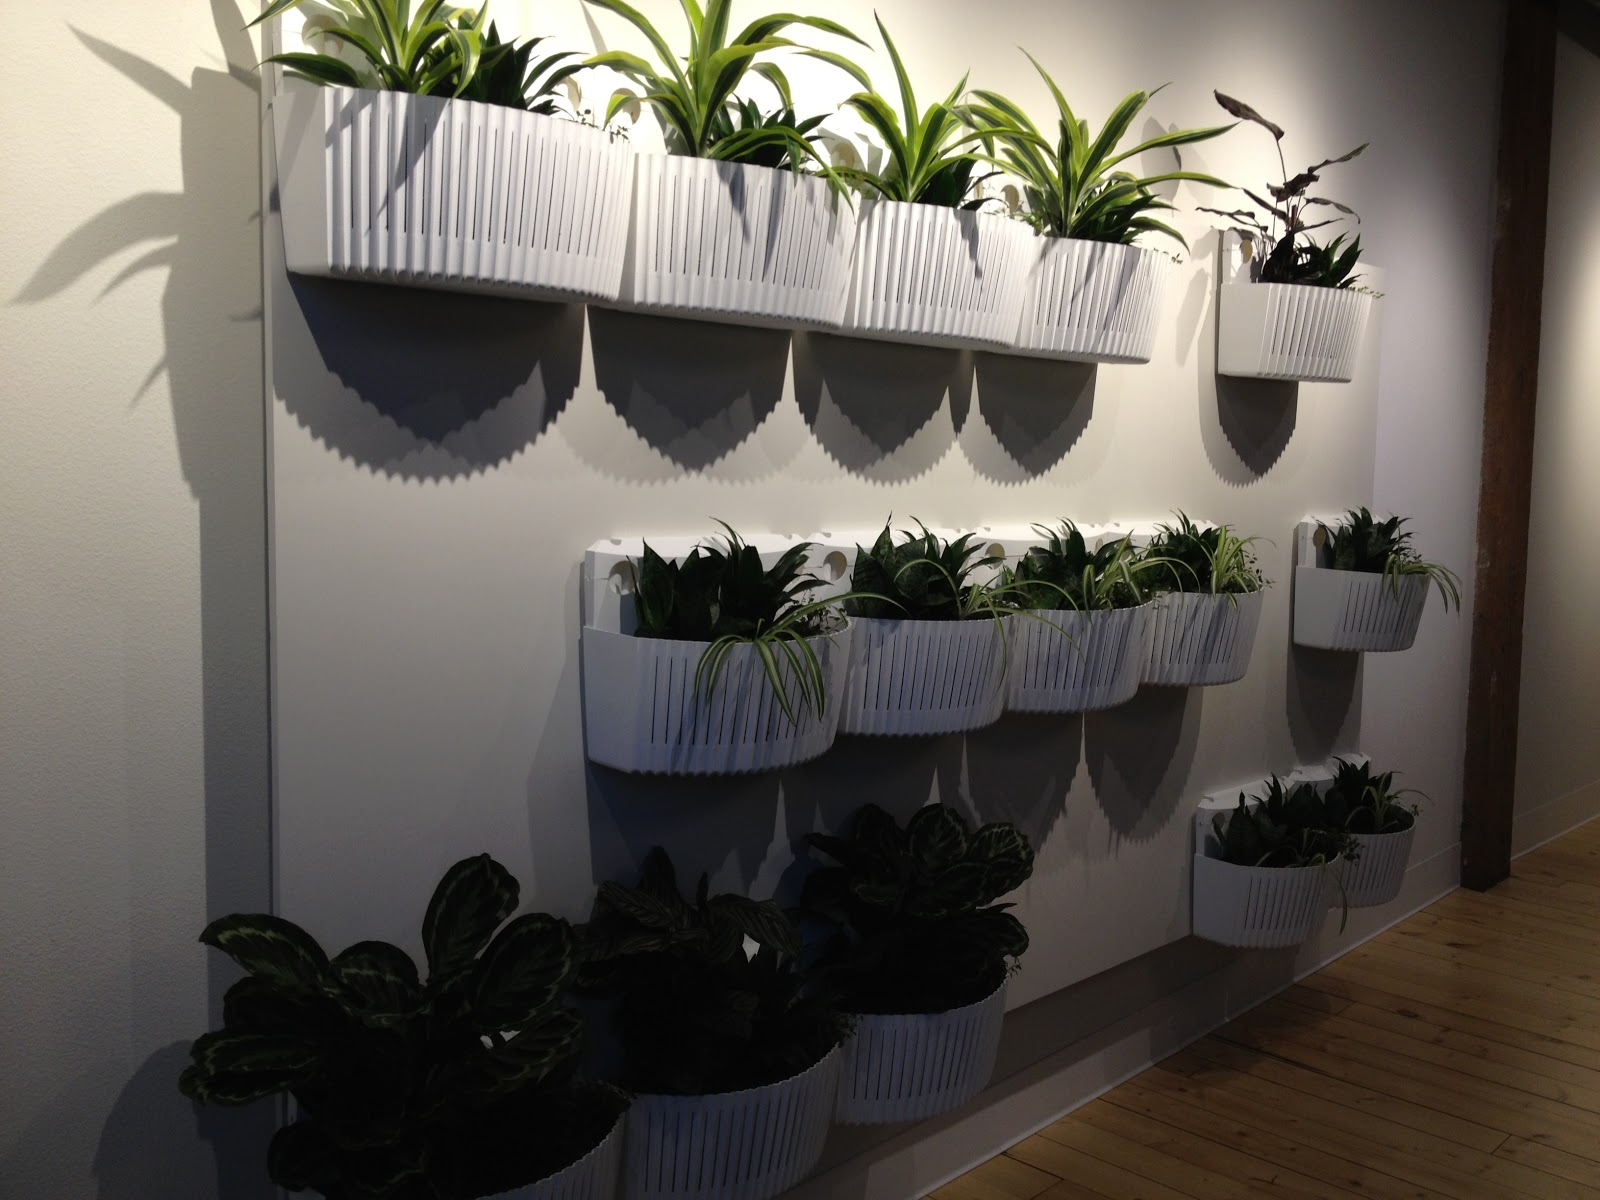 Superb Old Fashioned Woolly Pocket Living Wall Planter 2 Review Picture .